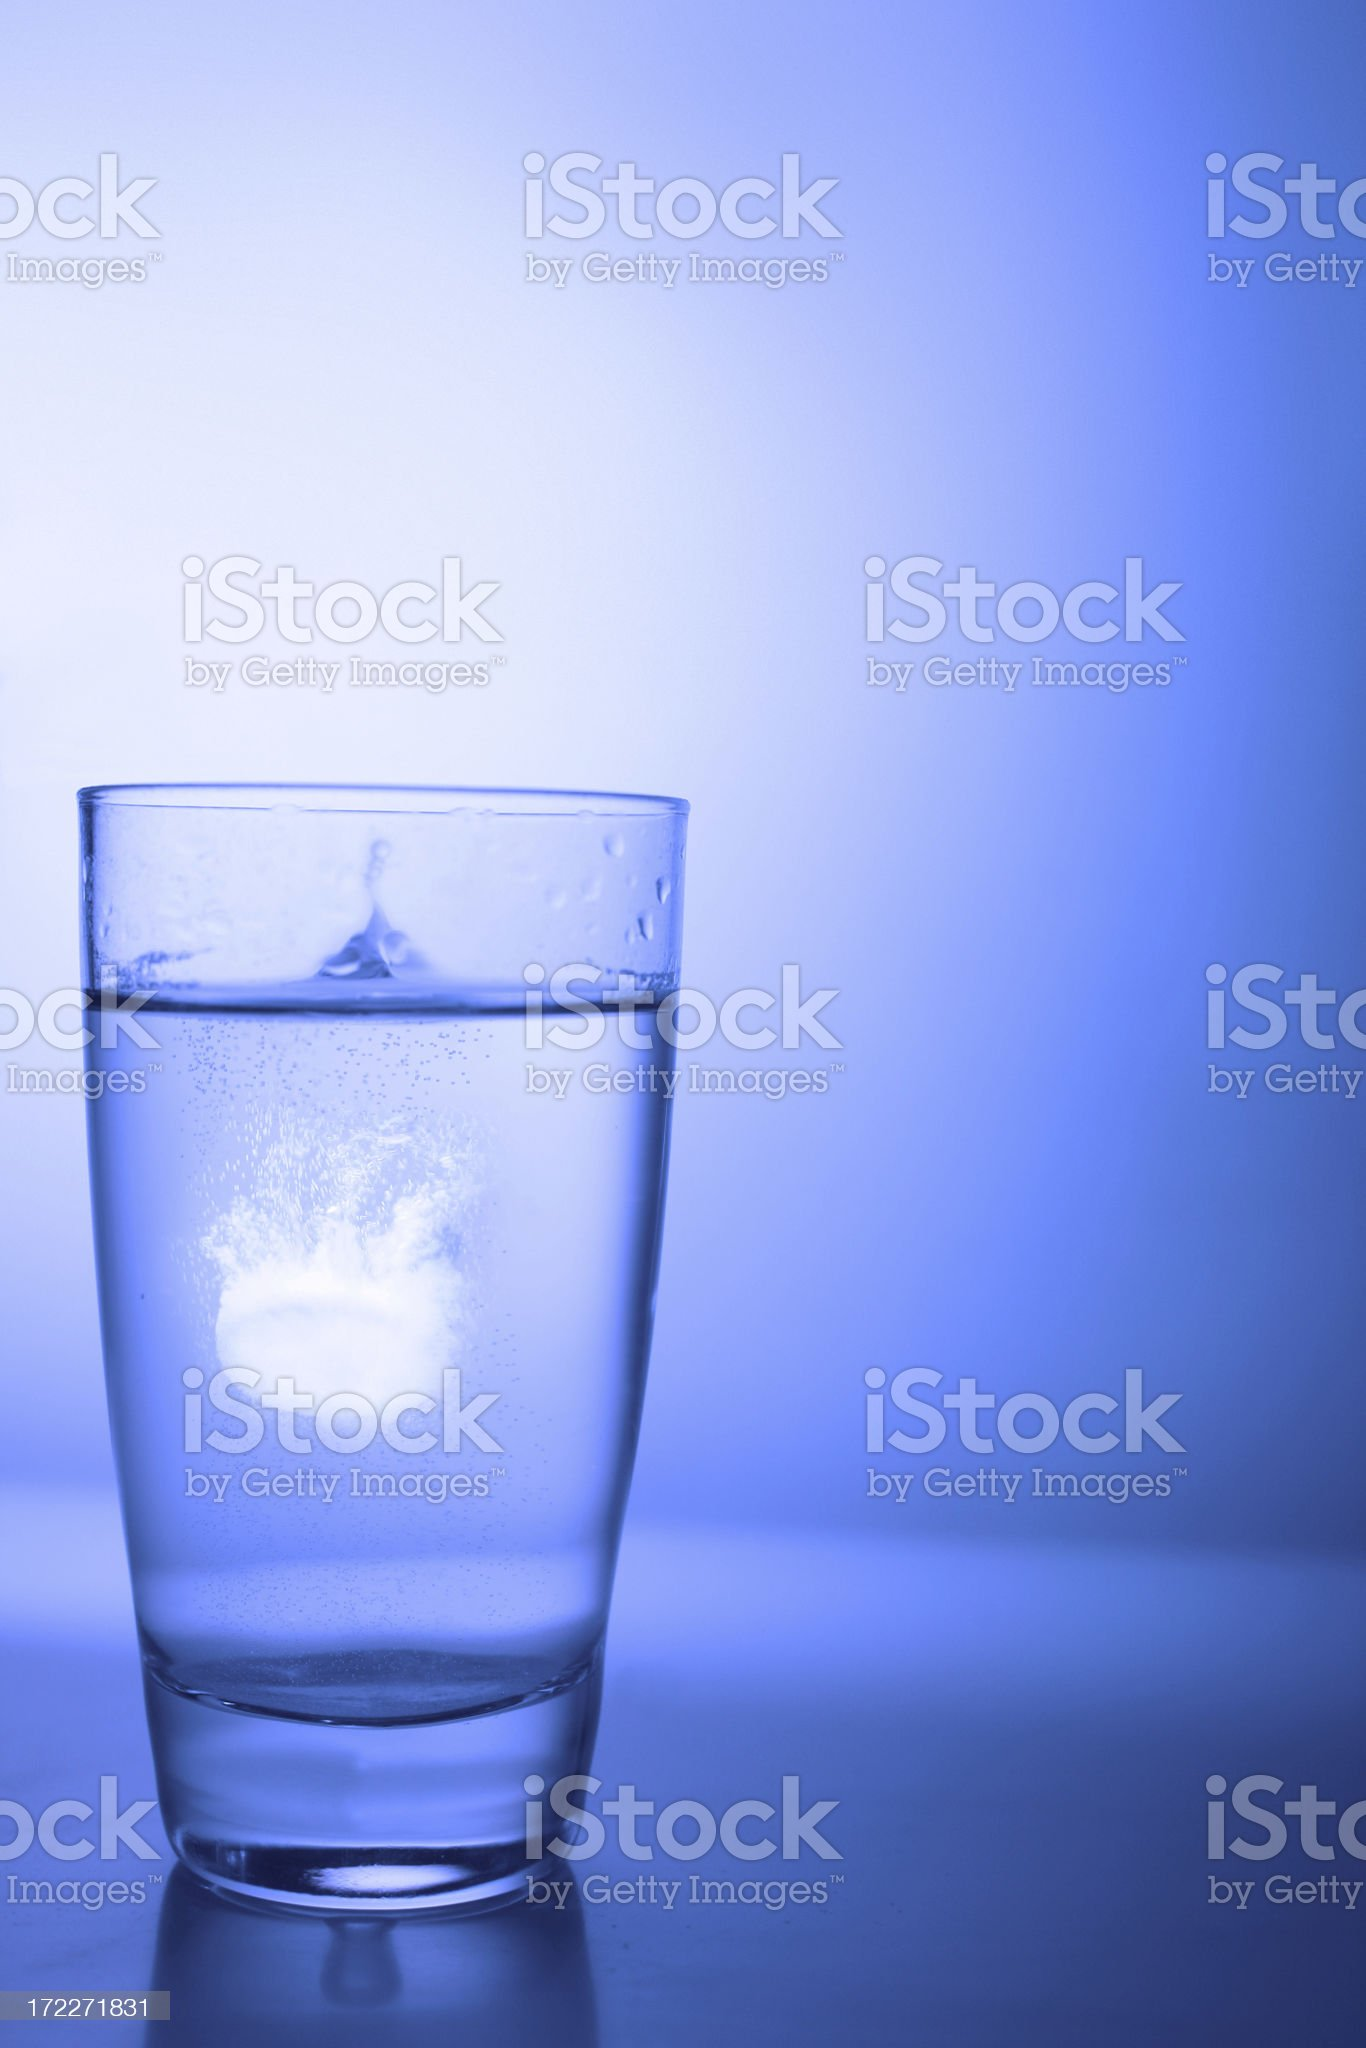 asprin disolving in water royalty-free stock photo